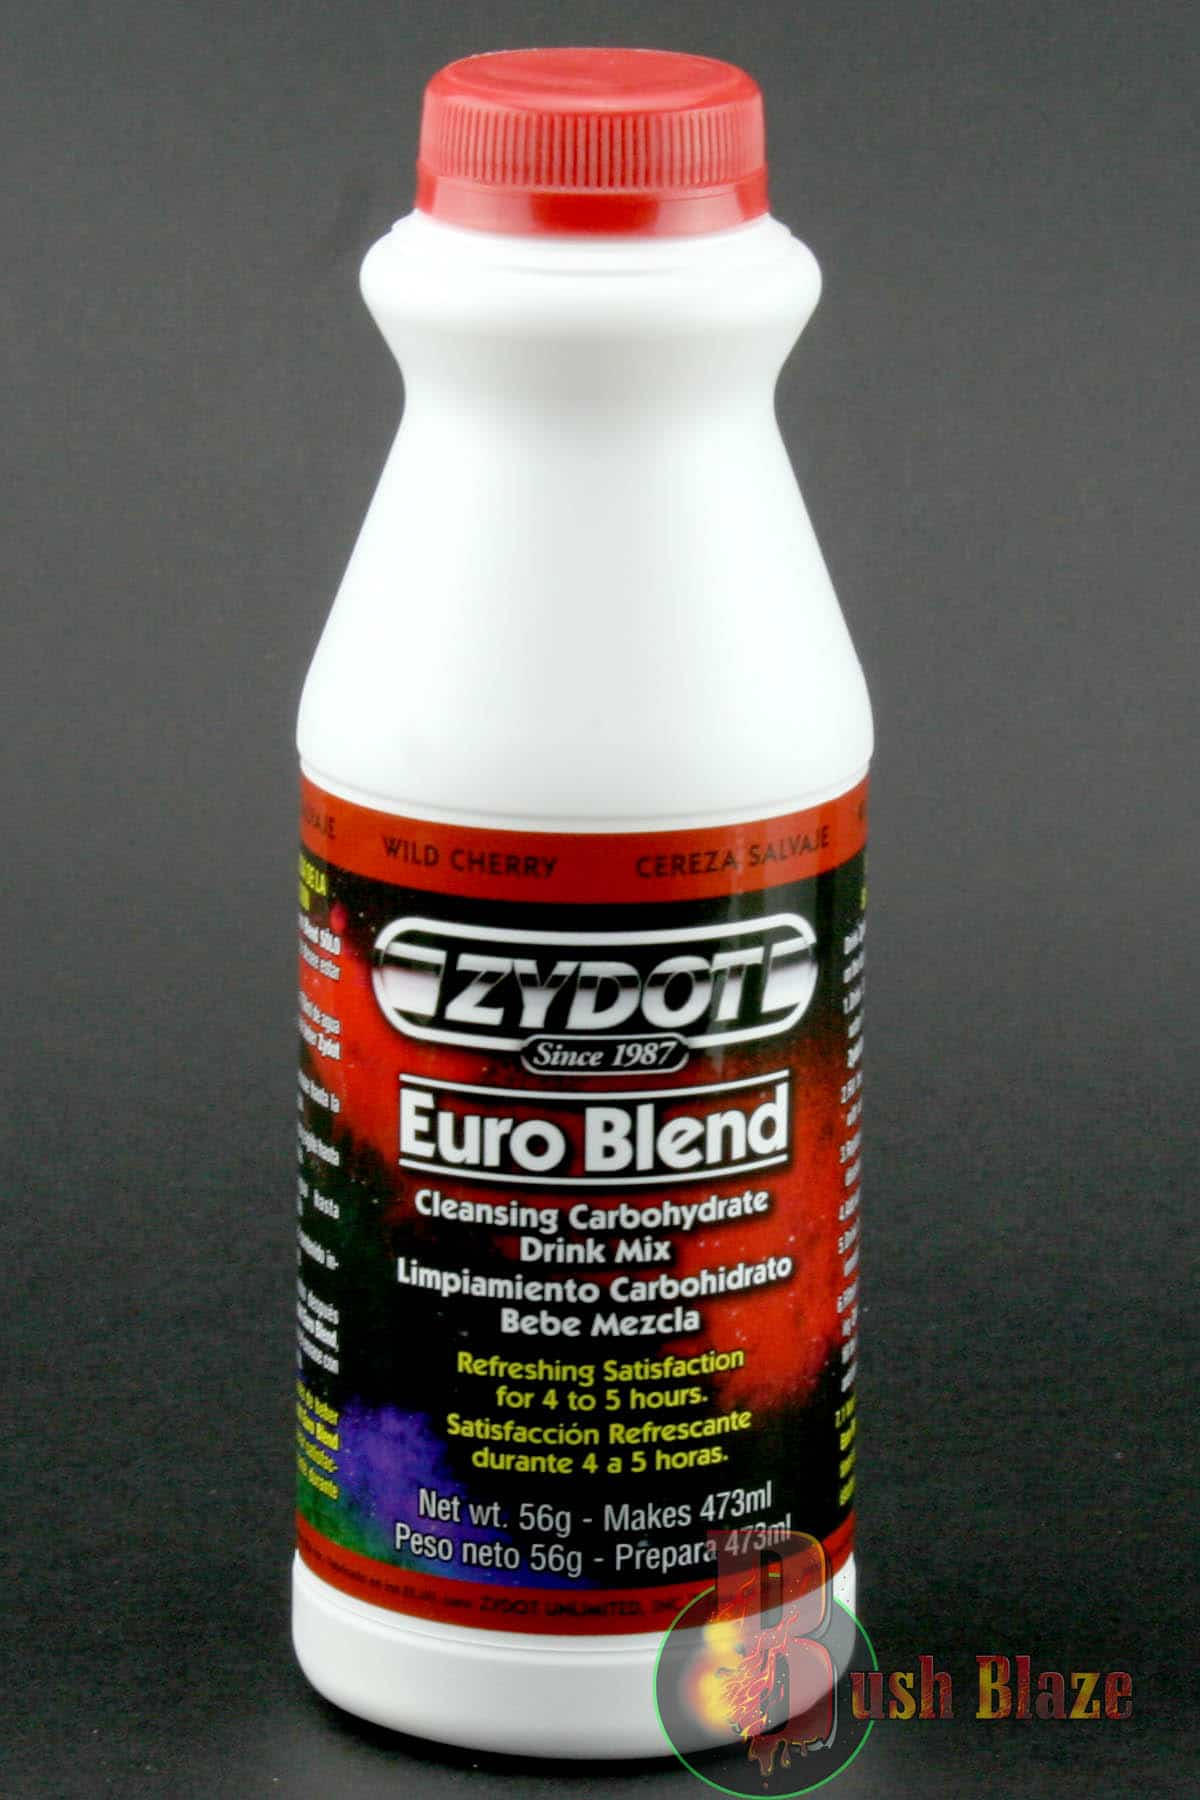 Zydot euro blend urine purifying drug test detox for Cocktail urine